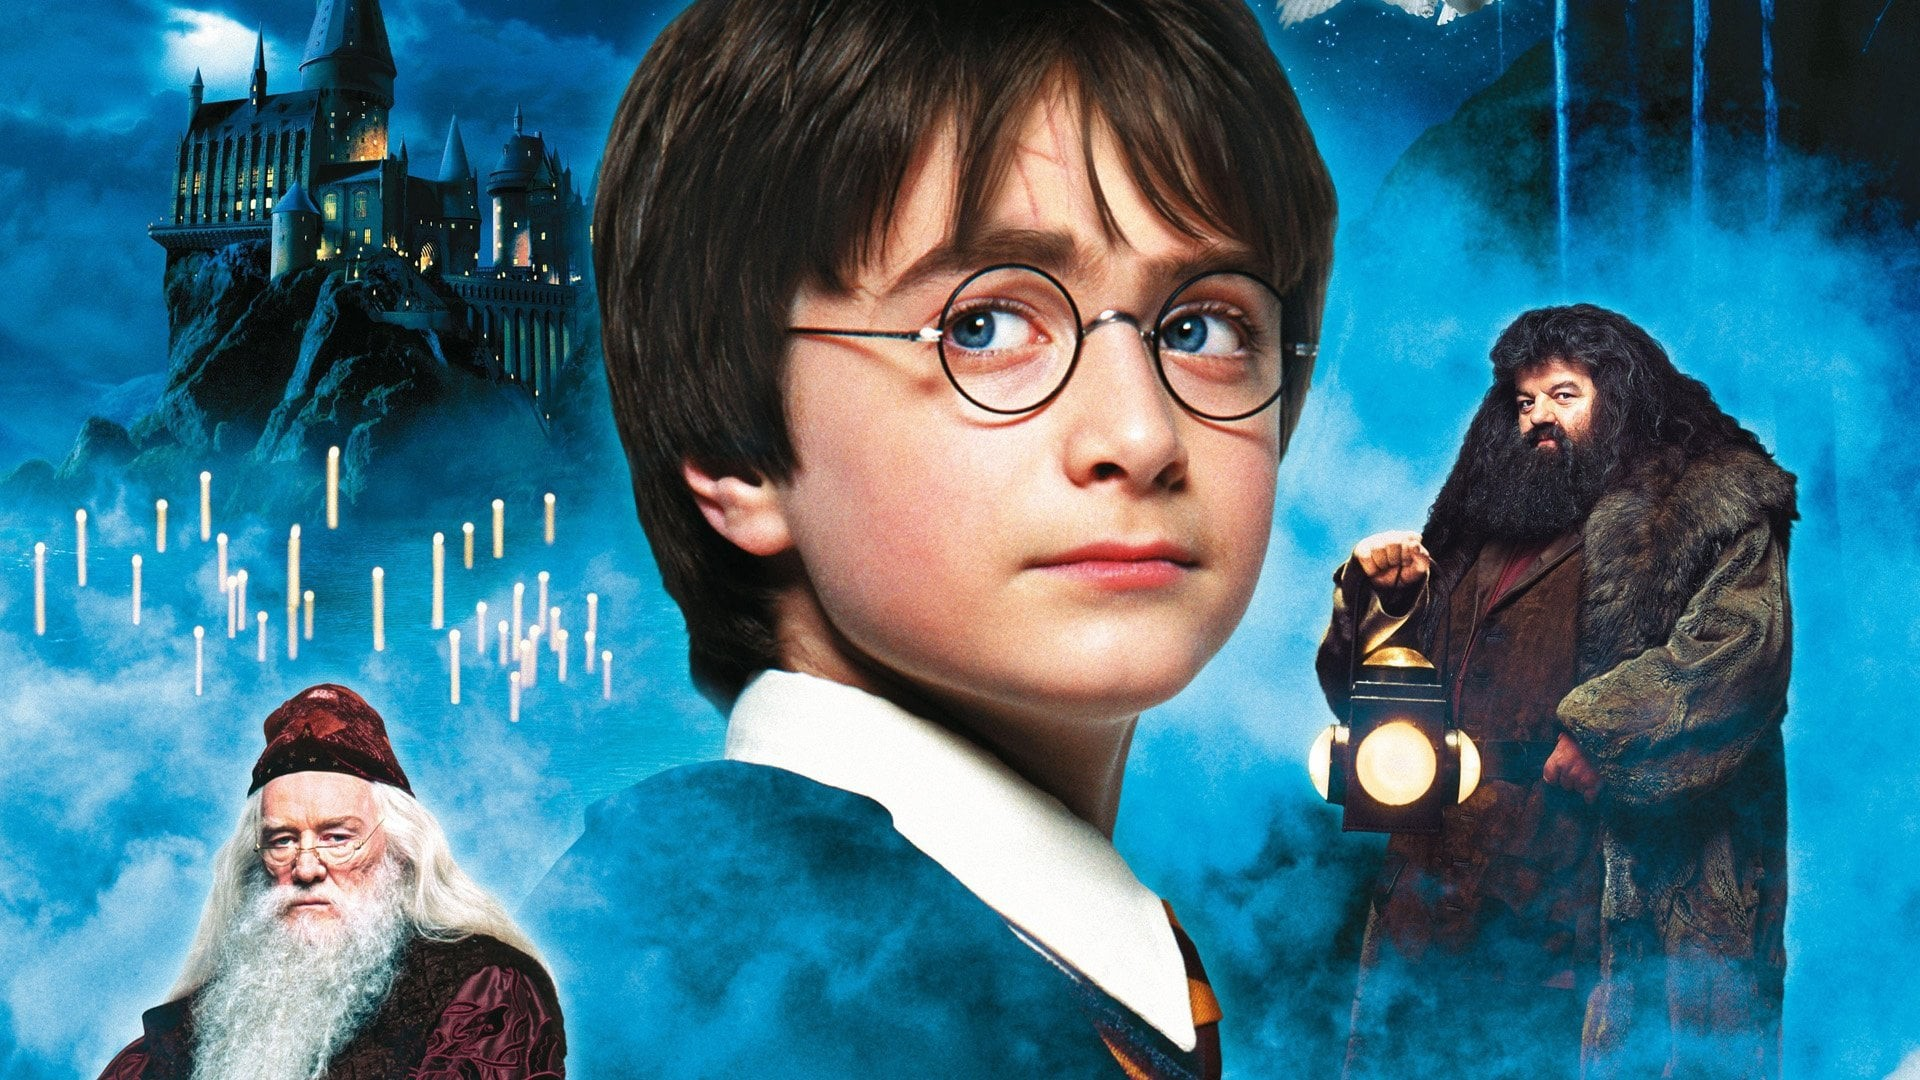 Harry Potter Teil 7 Ganzer Film Deutsch